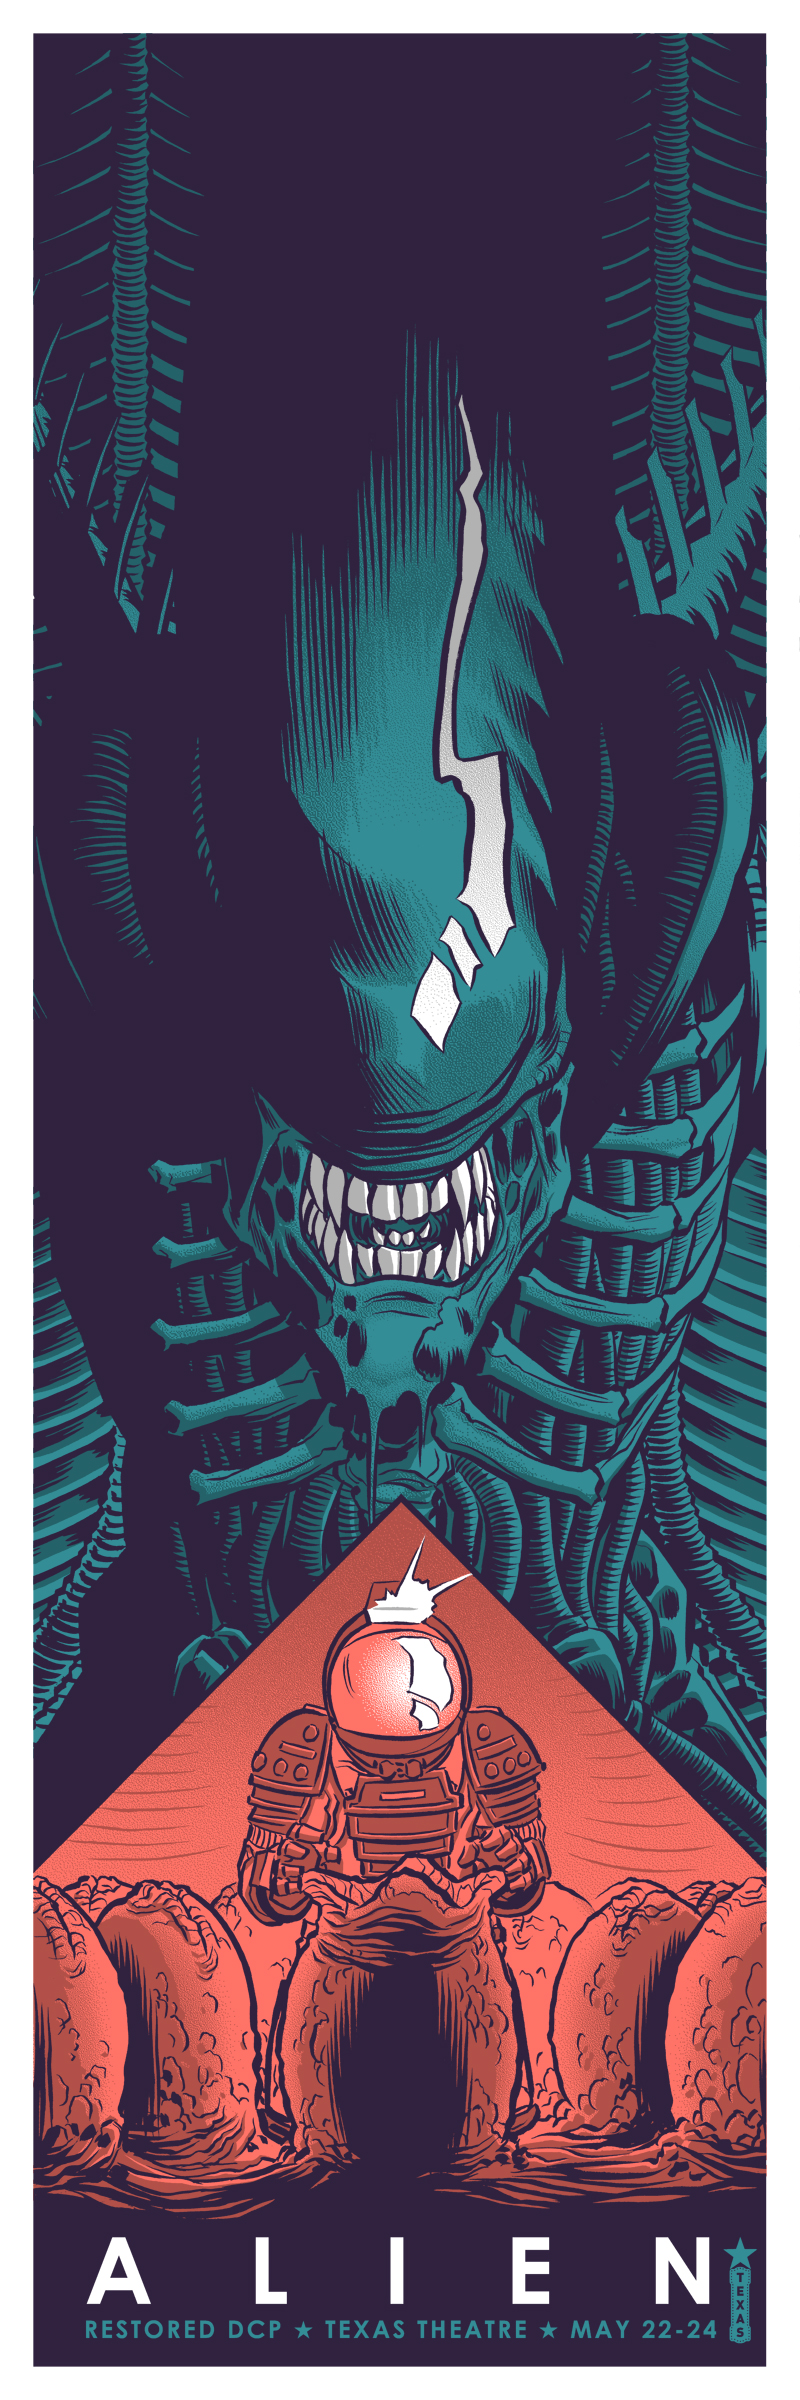 """Alien"" by Robert Wilson IV.  12"" x 36"" Screenprint.  Ed of 75 S/N.  $40 (Green)"